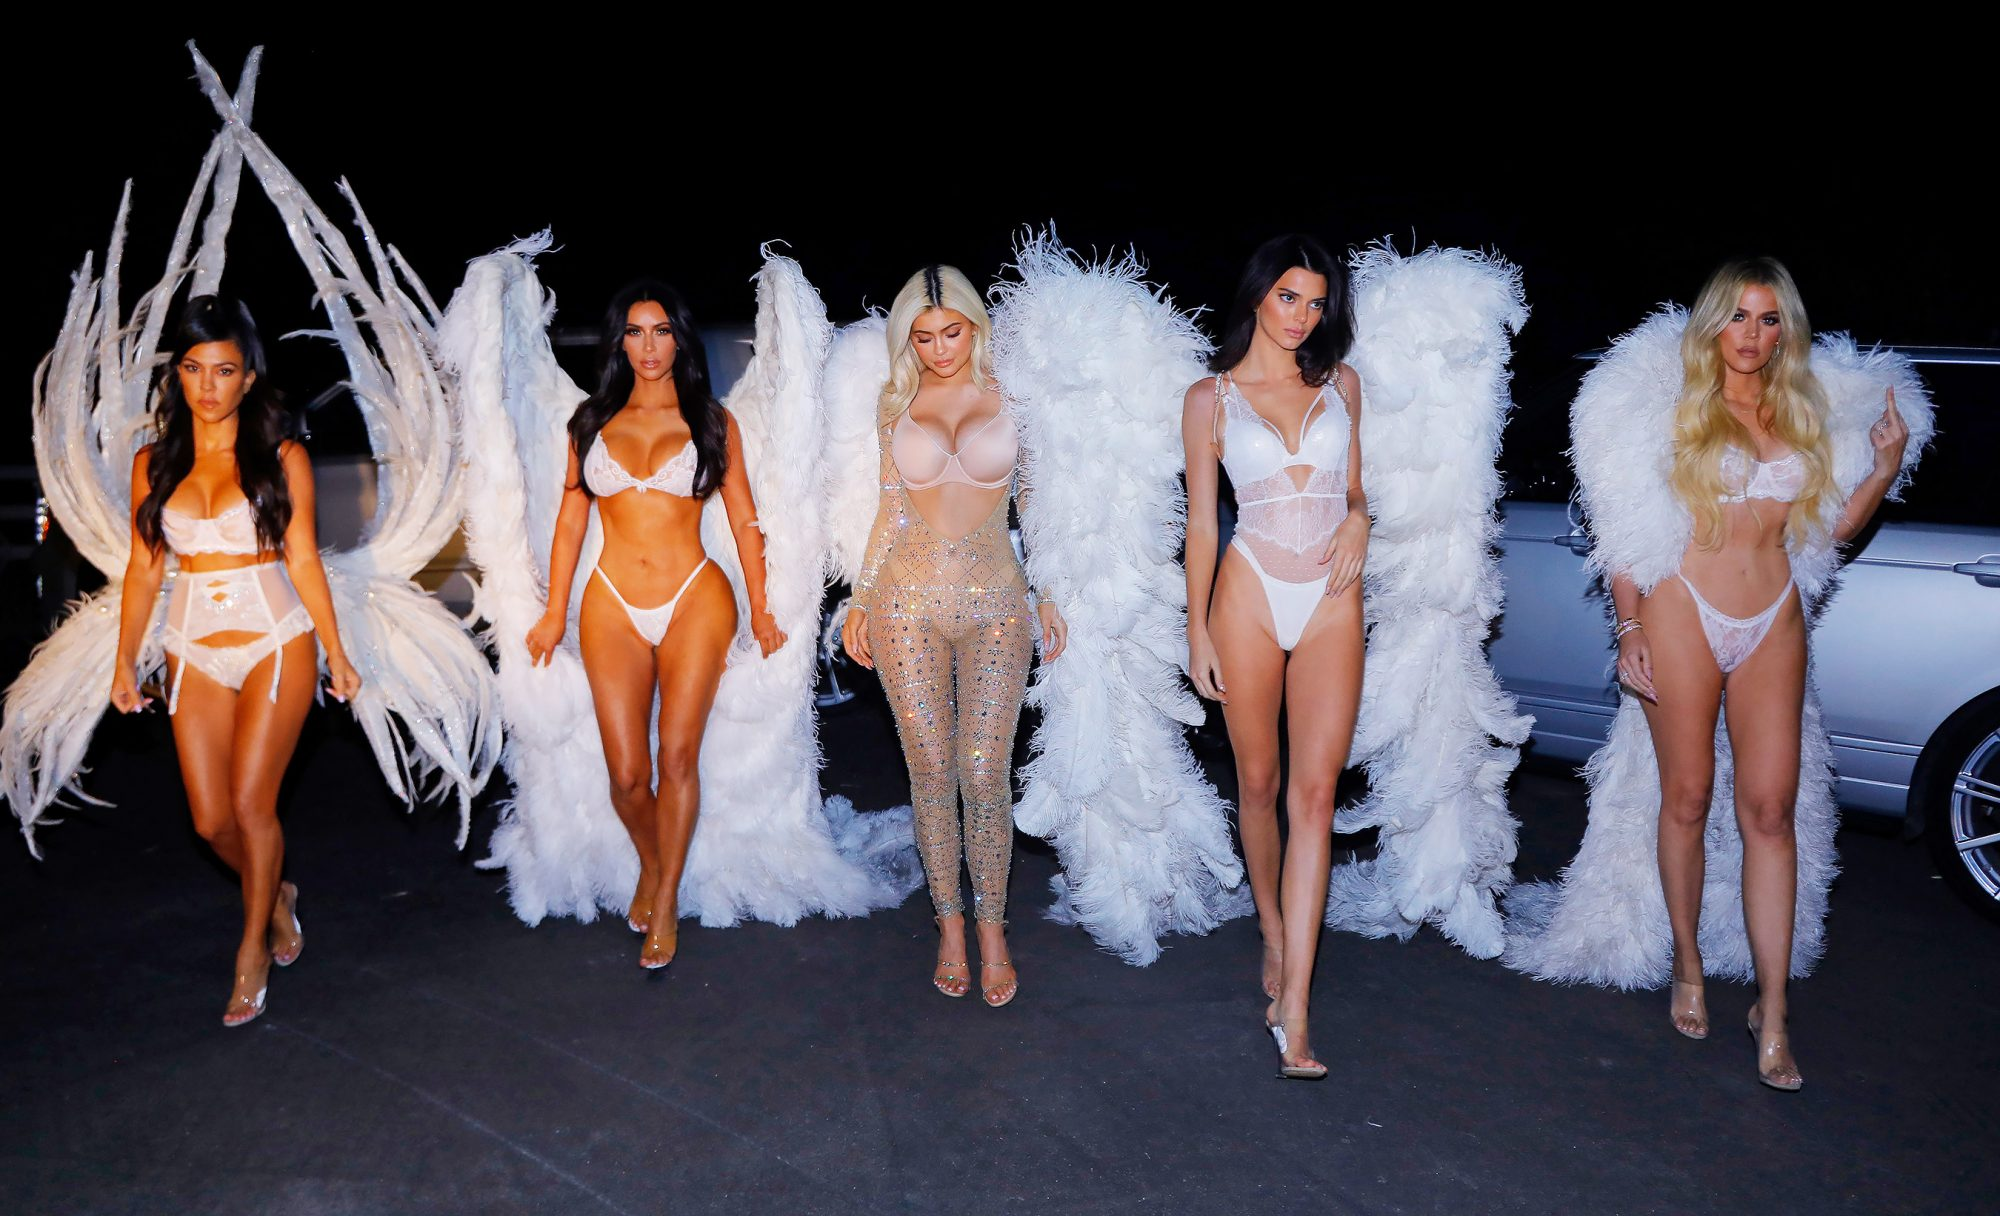 EXCLUSIVE: ***NO WEB UNTIL 11am PST THURSDAY NOV 1st***Premium Exclusive** The Kardashian Angels! All of the Kardashian - Jenner sisters dress up as Victoria Secret Angels for Kim's Halloween party in Los Angeles.